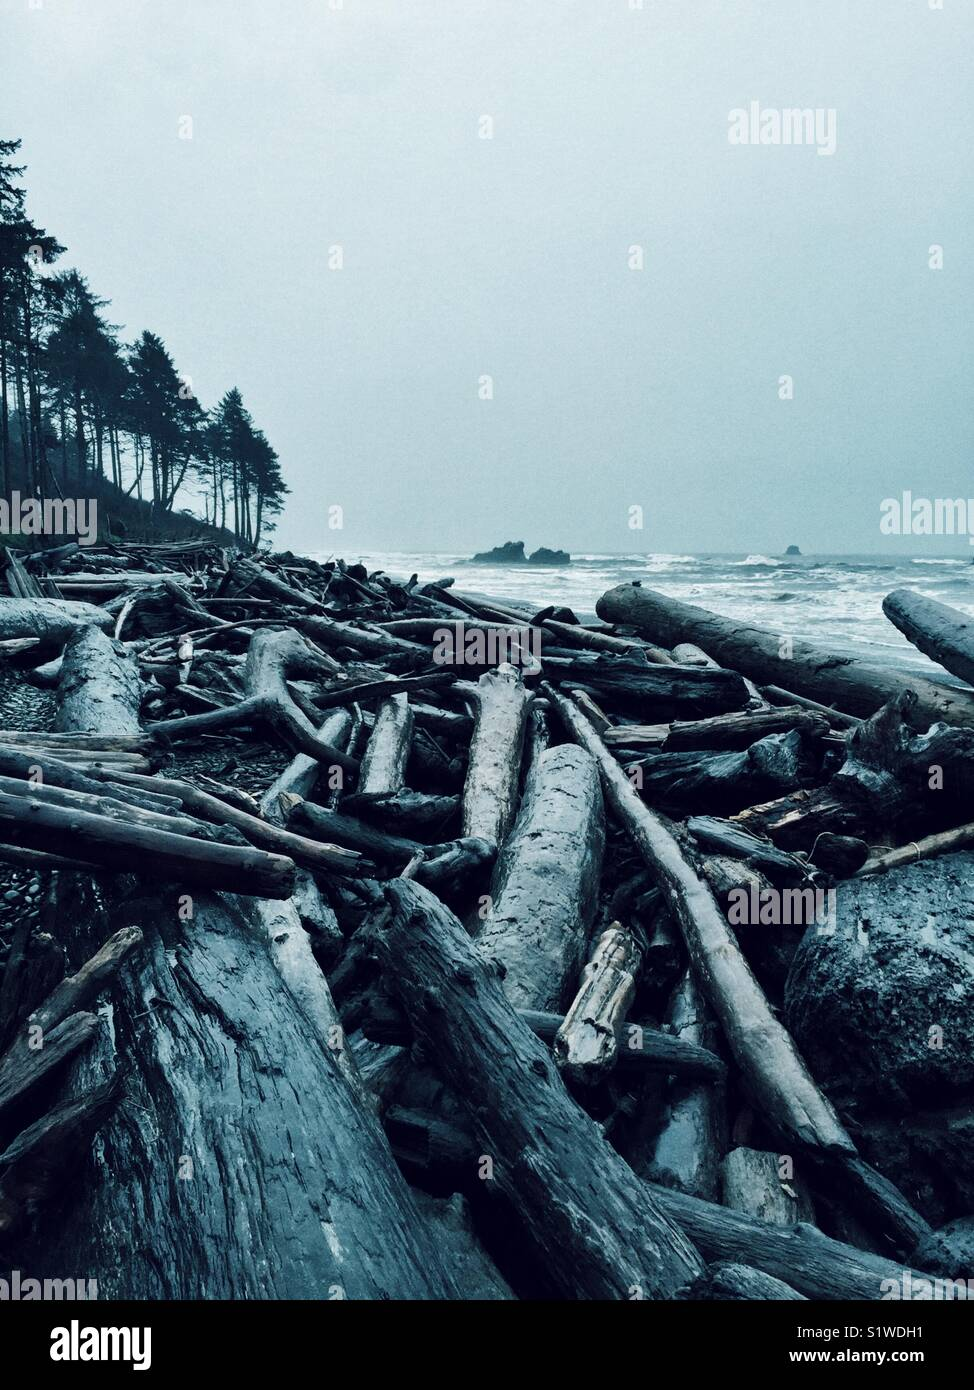 Piles of driftwood left on Ruby Beach after winter storms - Stock Image